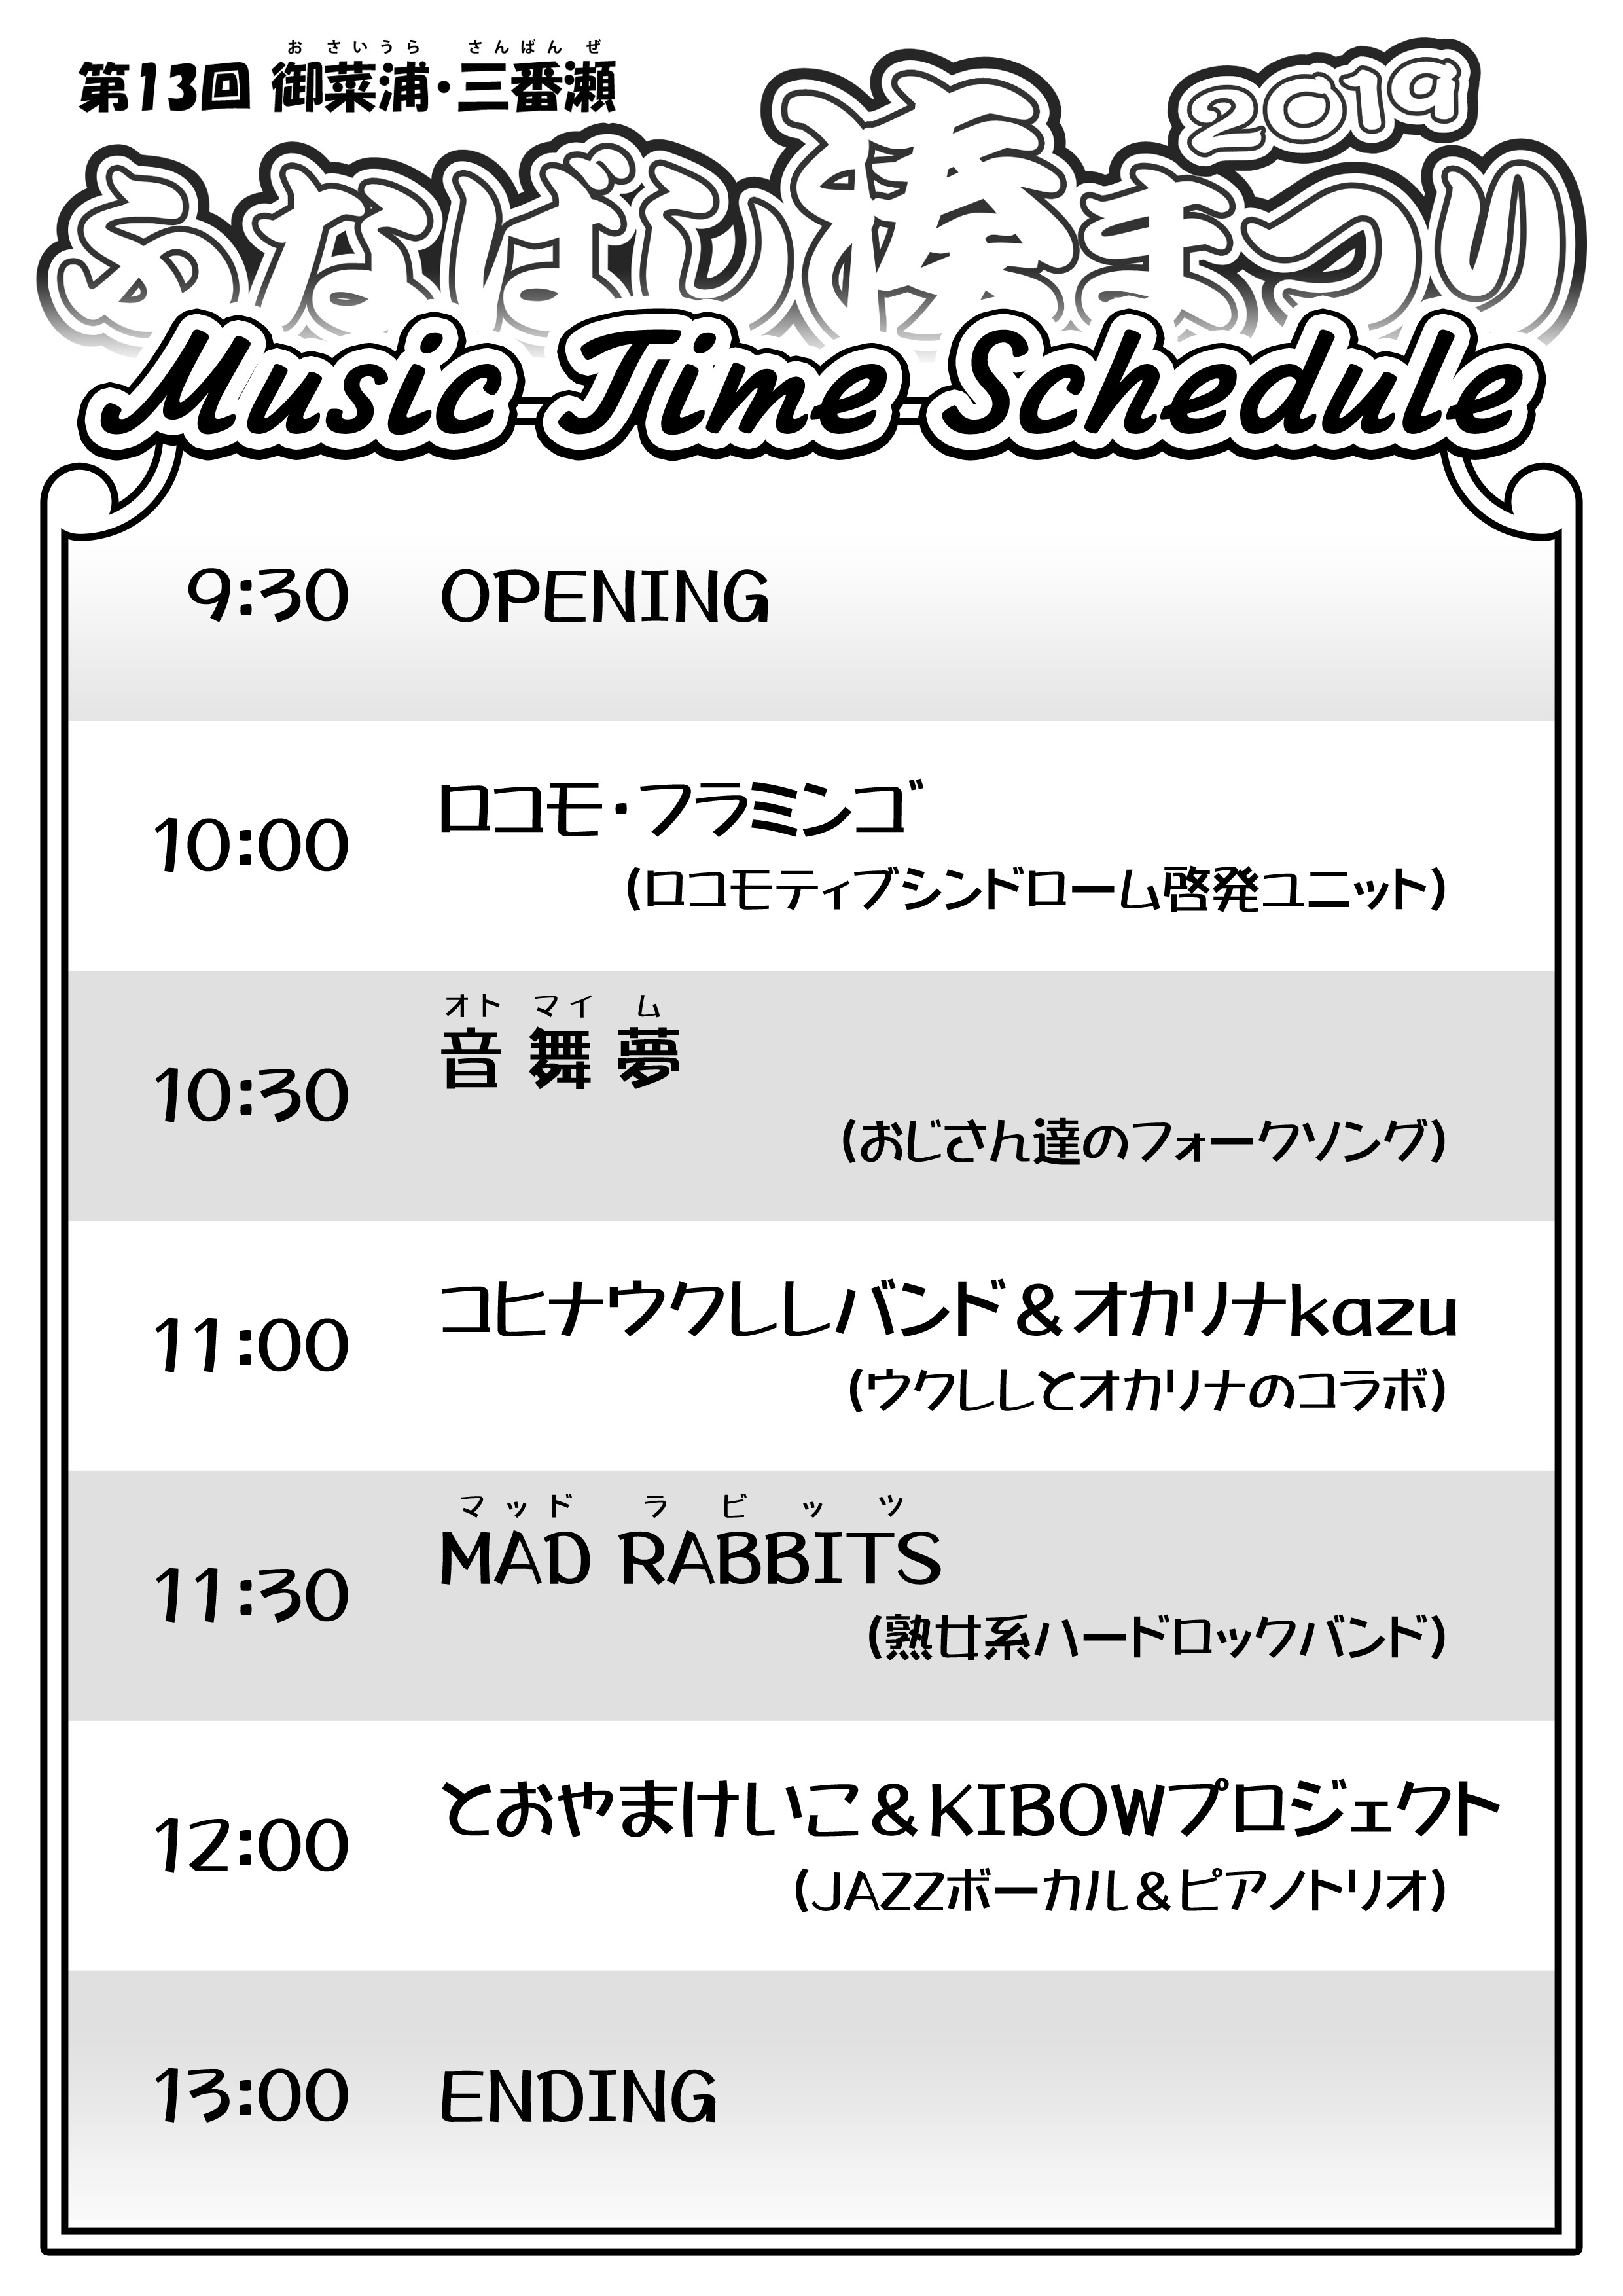 Music Time Schedule 2019 ふなばし港まつり